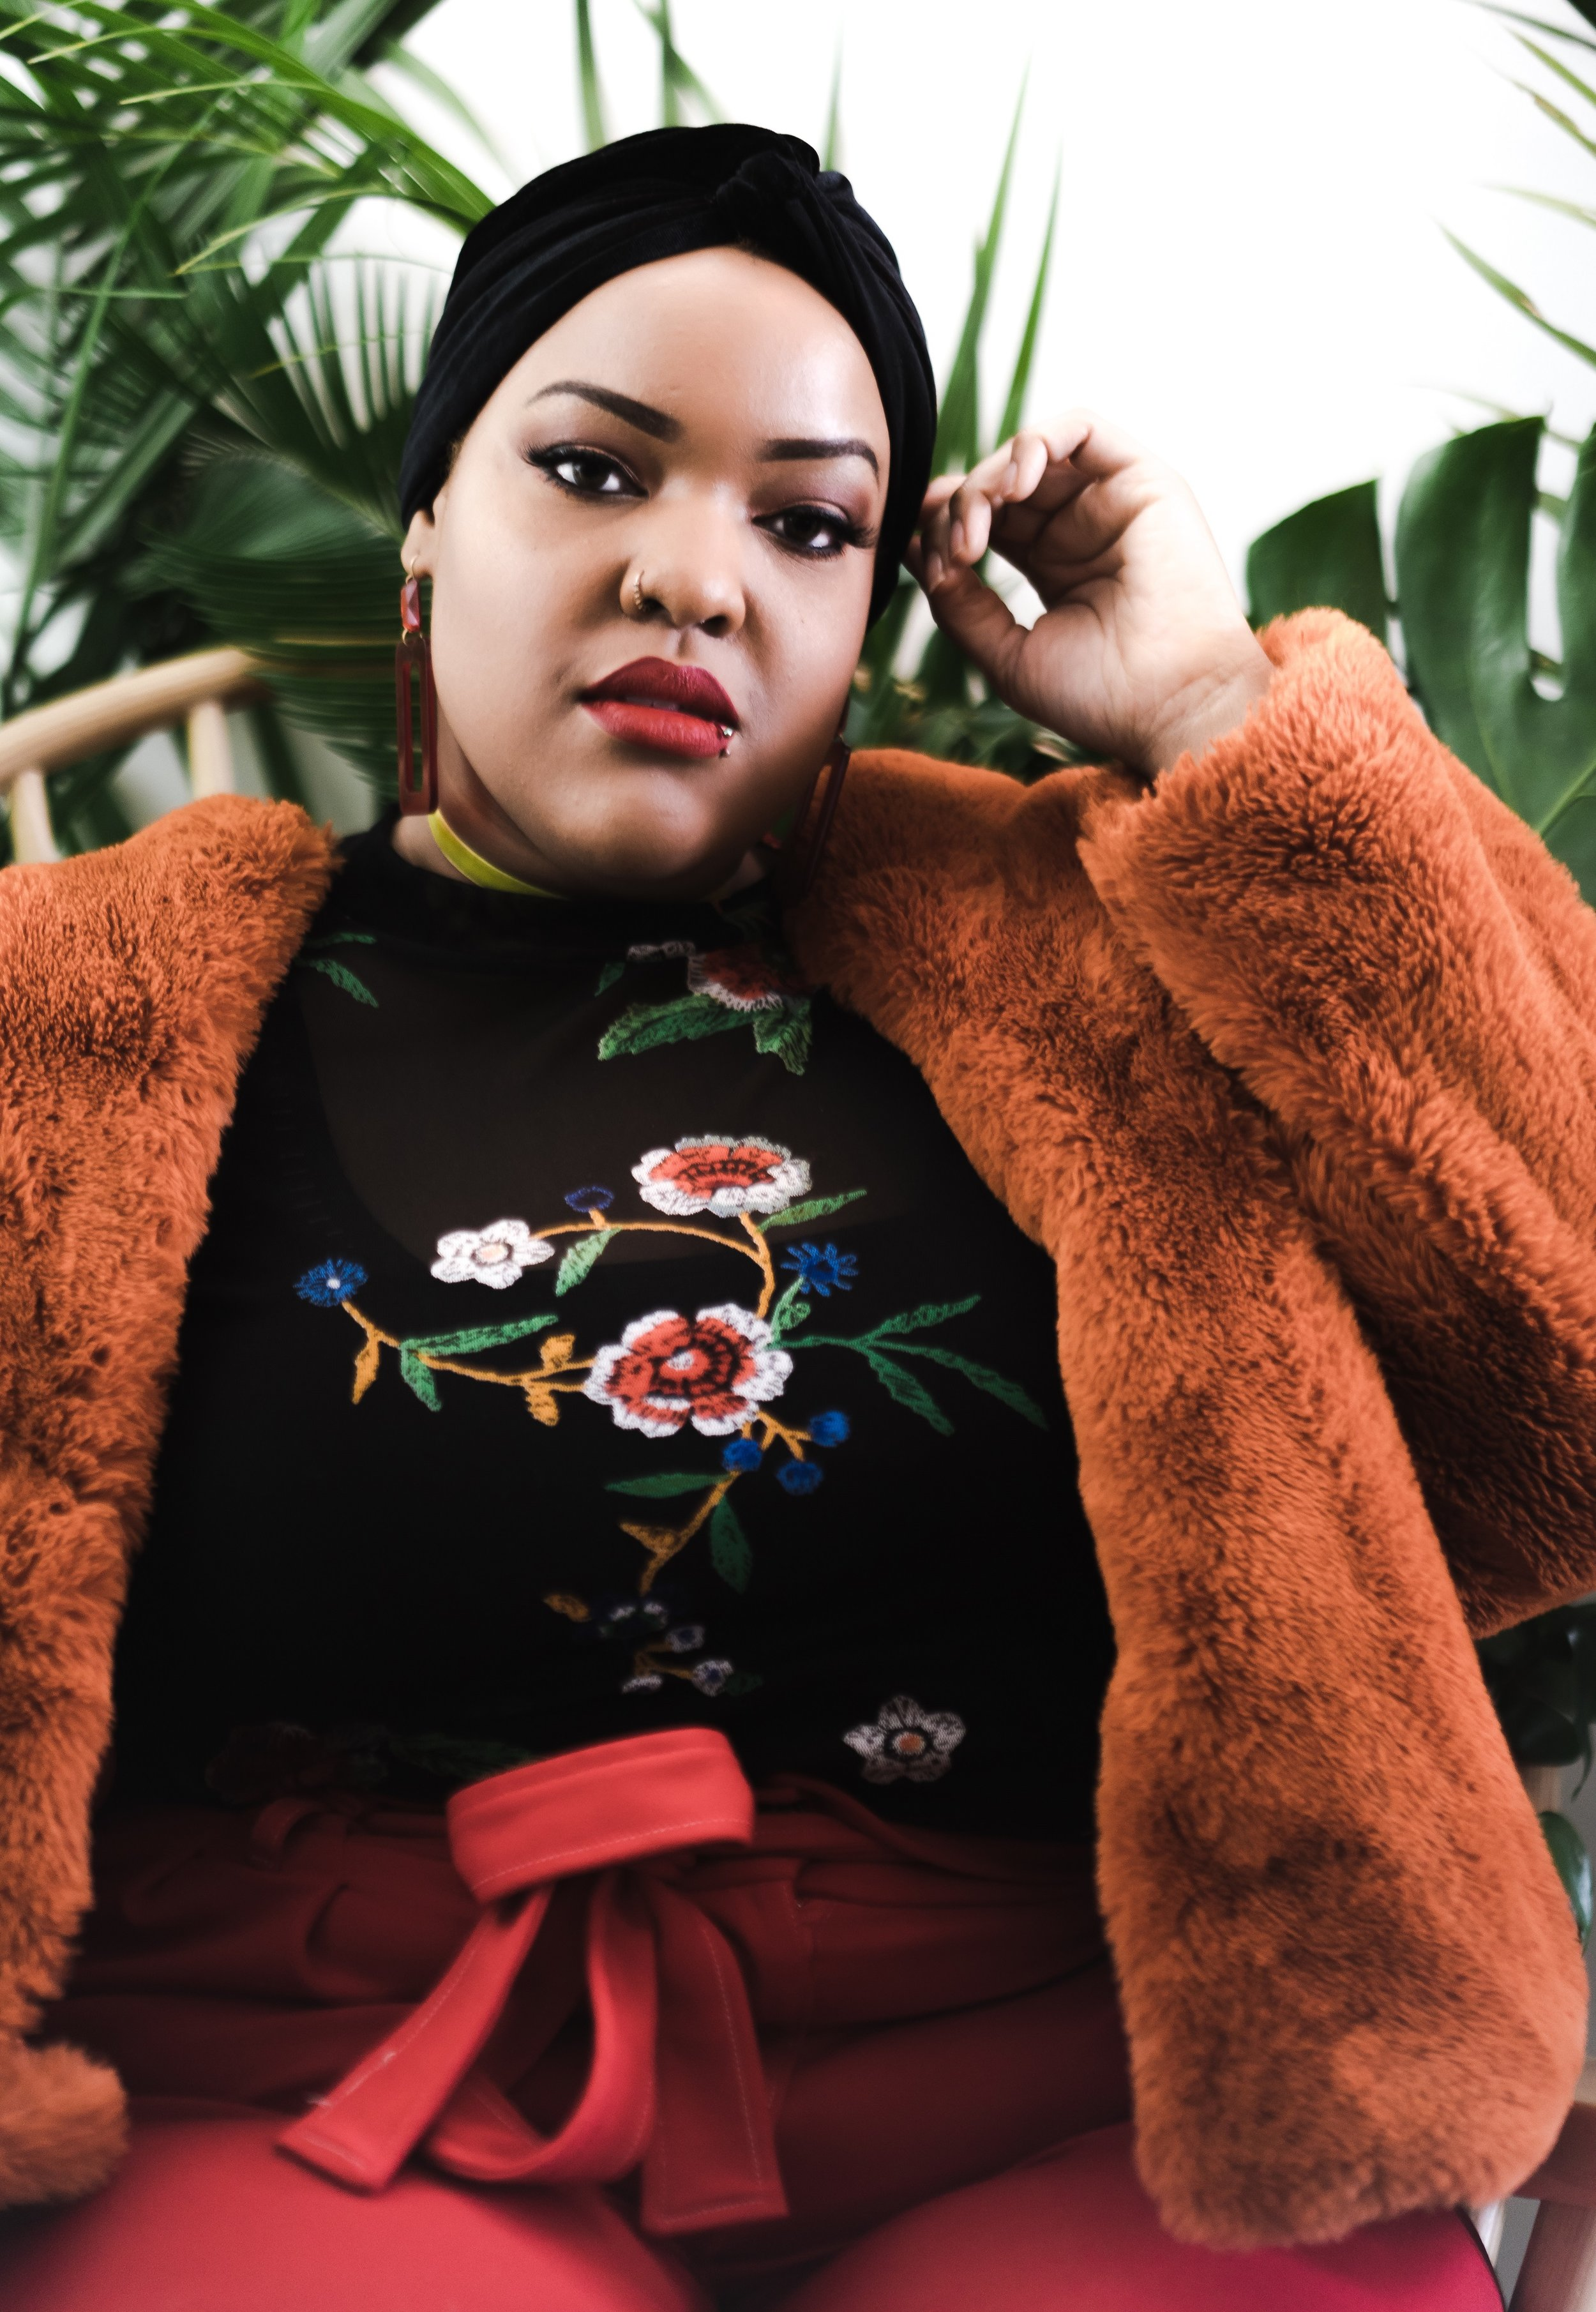 Leah-Vernon-New-York-Blogger-Plus-Size-Model-Body-Positive-Muslim-Girl-Hijabi-Style-Instagram-Influencer-1.jpg